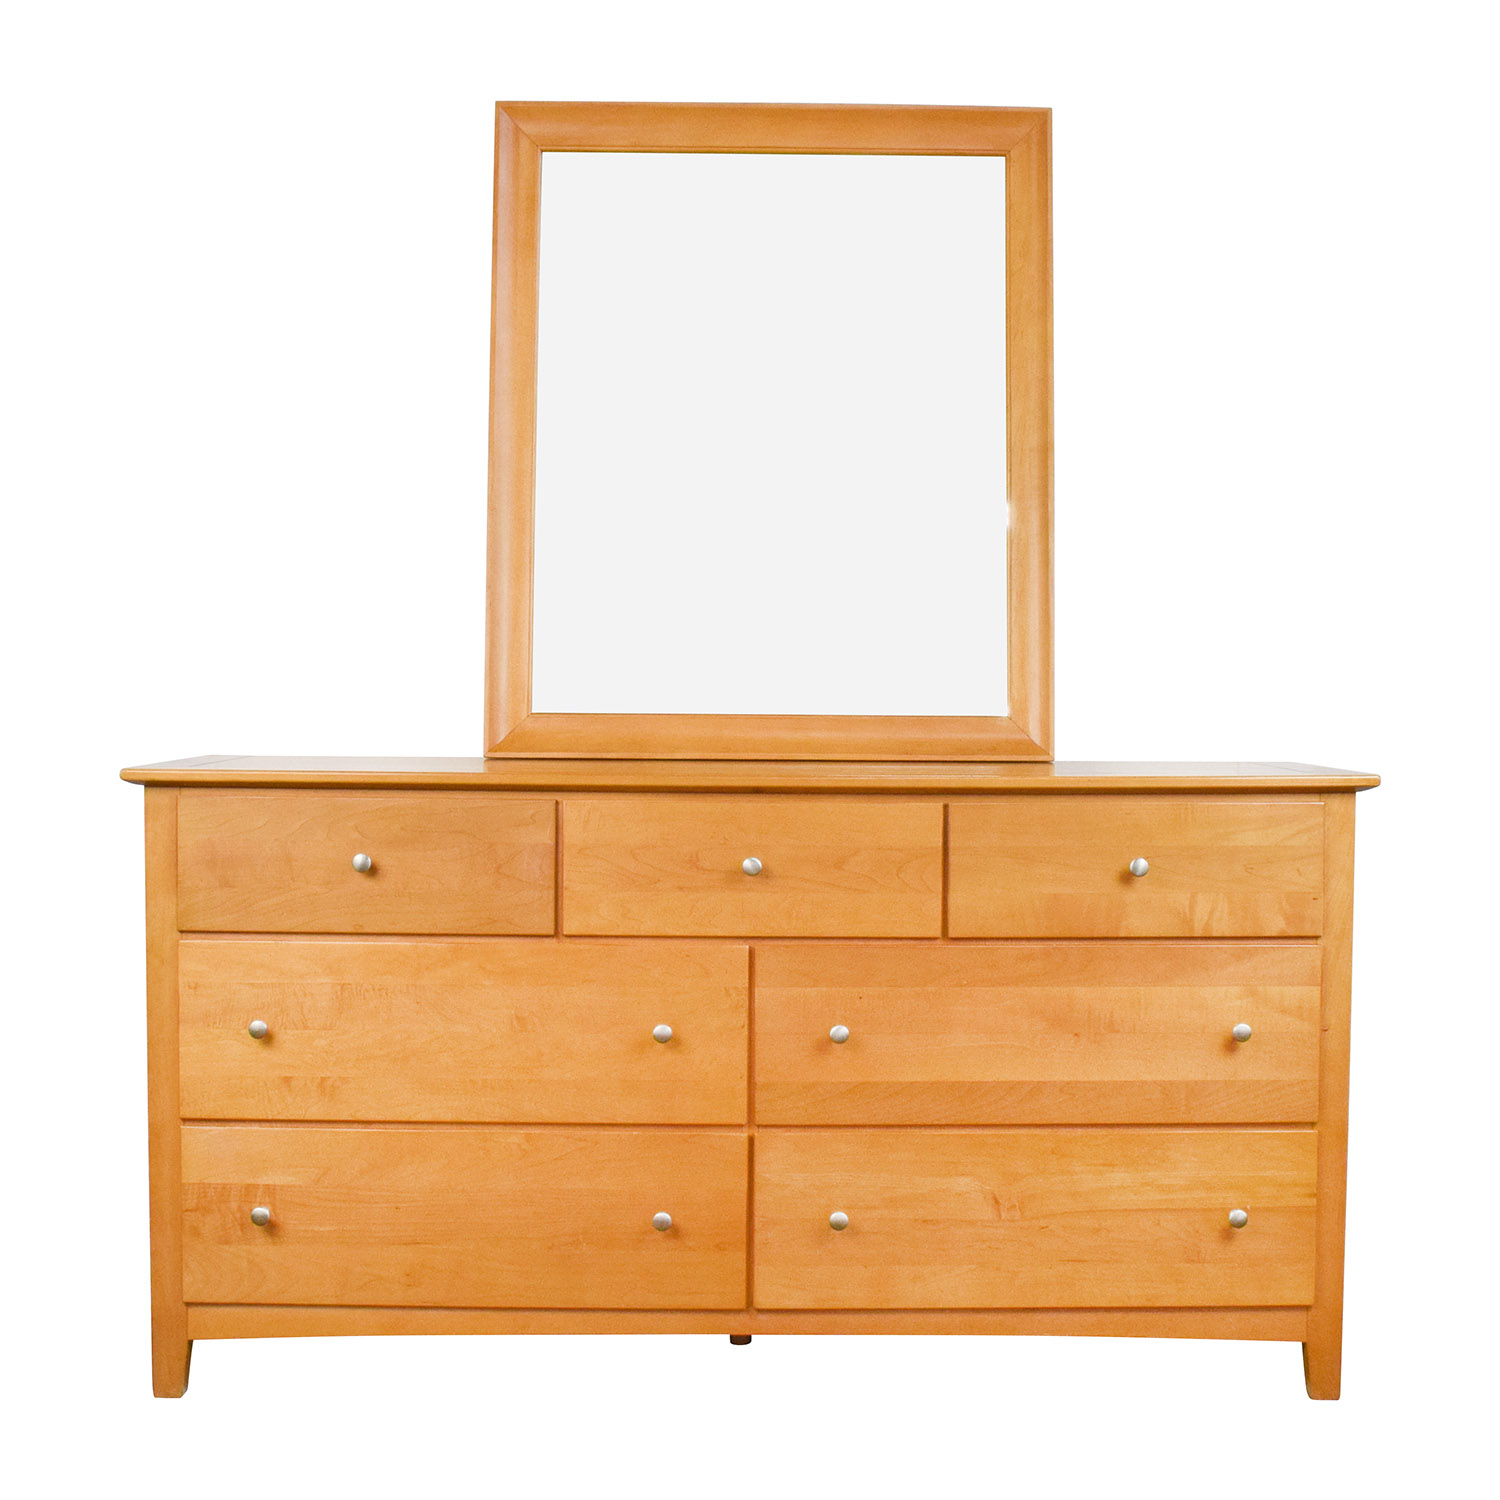 75 off stanley furniture stanley furniture maple wood for Stanley furniture